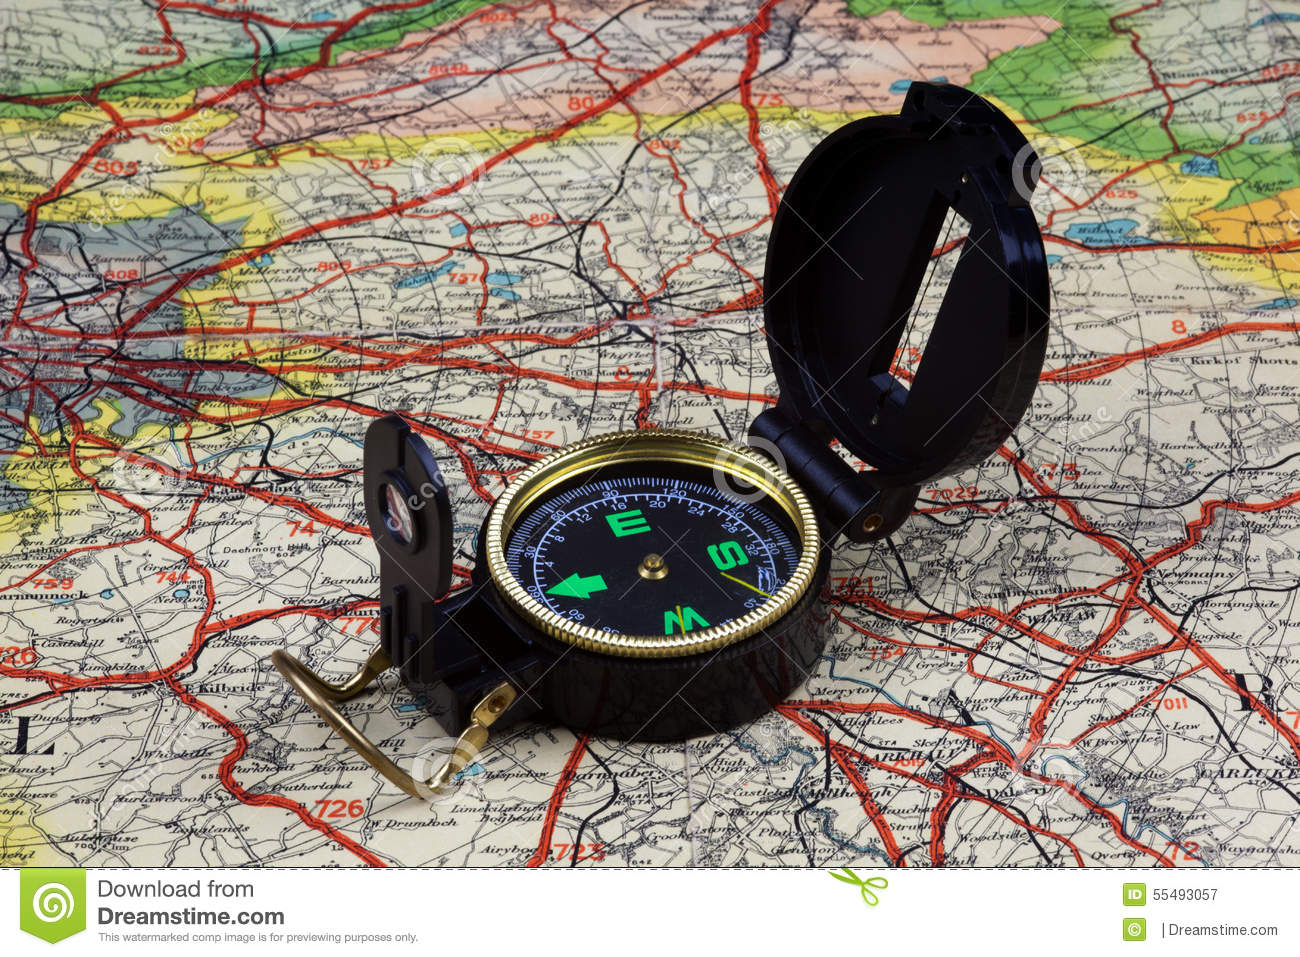 Compass on old map stock image  Image of rambling, scotland - 55493057